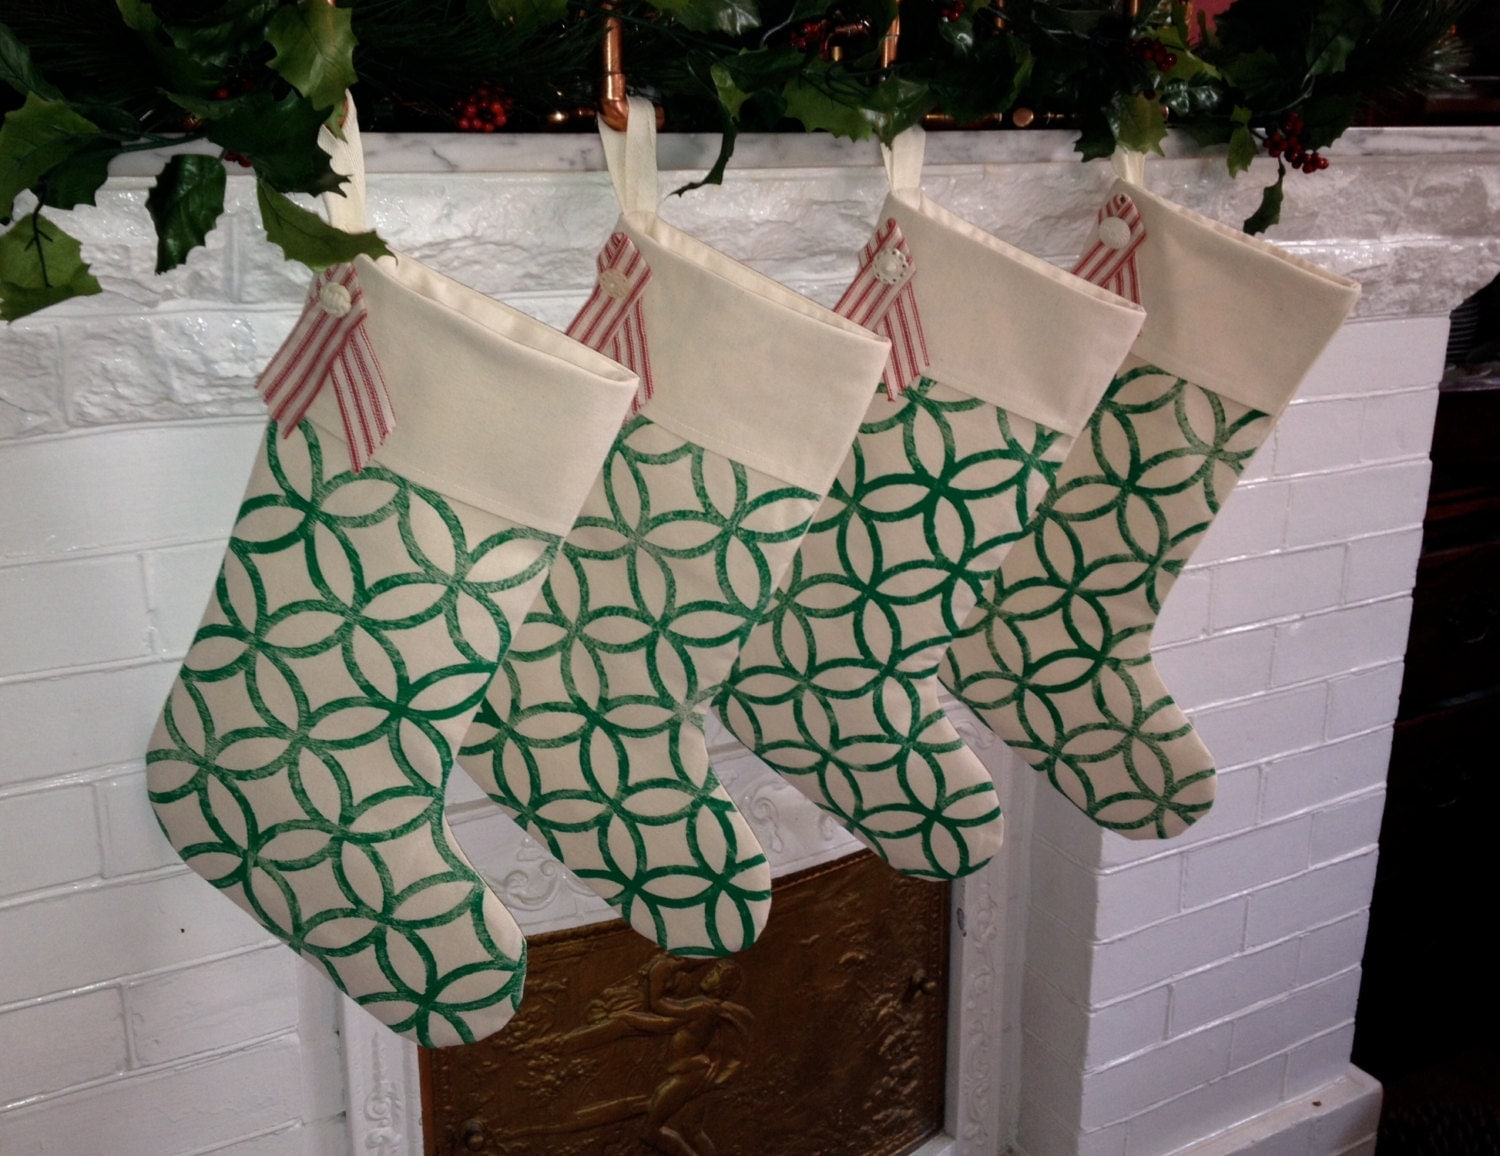 Stylish Handprinted Christmas Stocking - Modern Graphic Pattern on Cotton Canvas, Cottage Chic Holiday Decor  Holiday Stocking - MacAndLexie